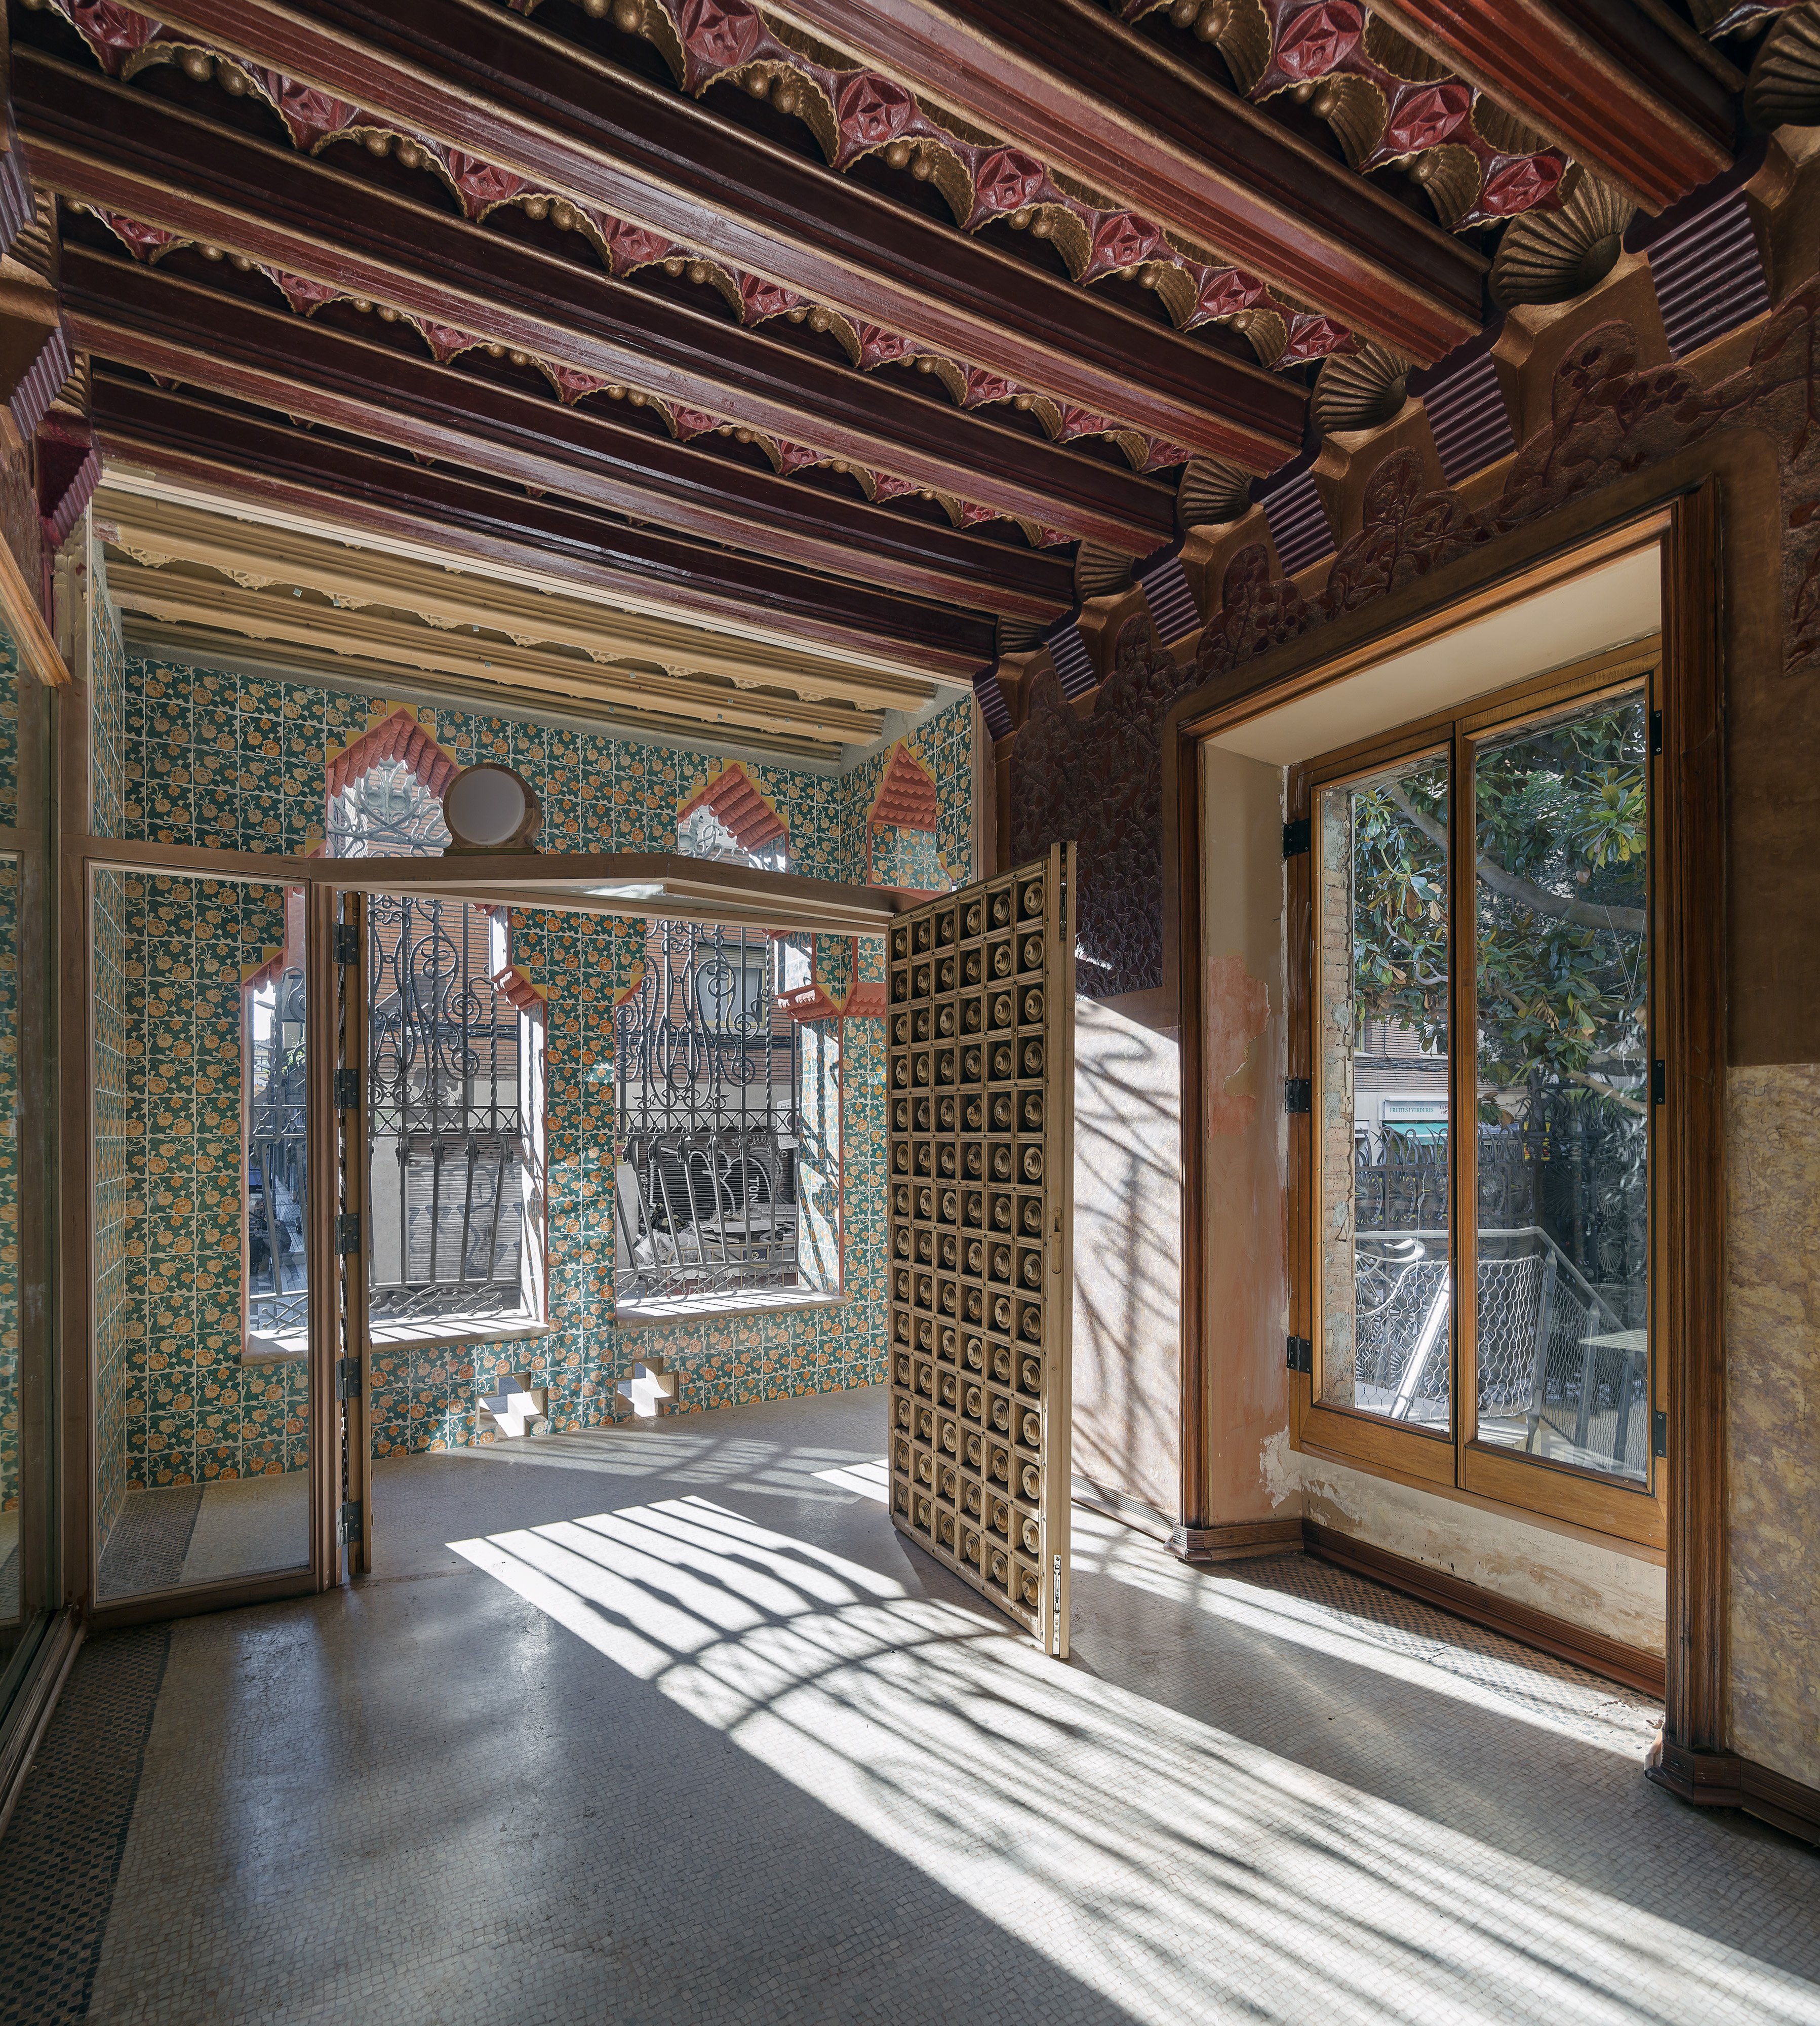 Antoni gaud s casa vicens to open later this month in for Casa vicens gaudi